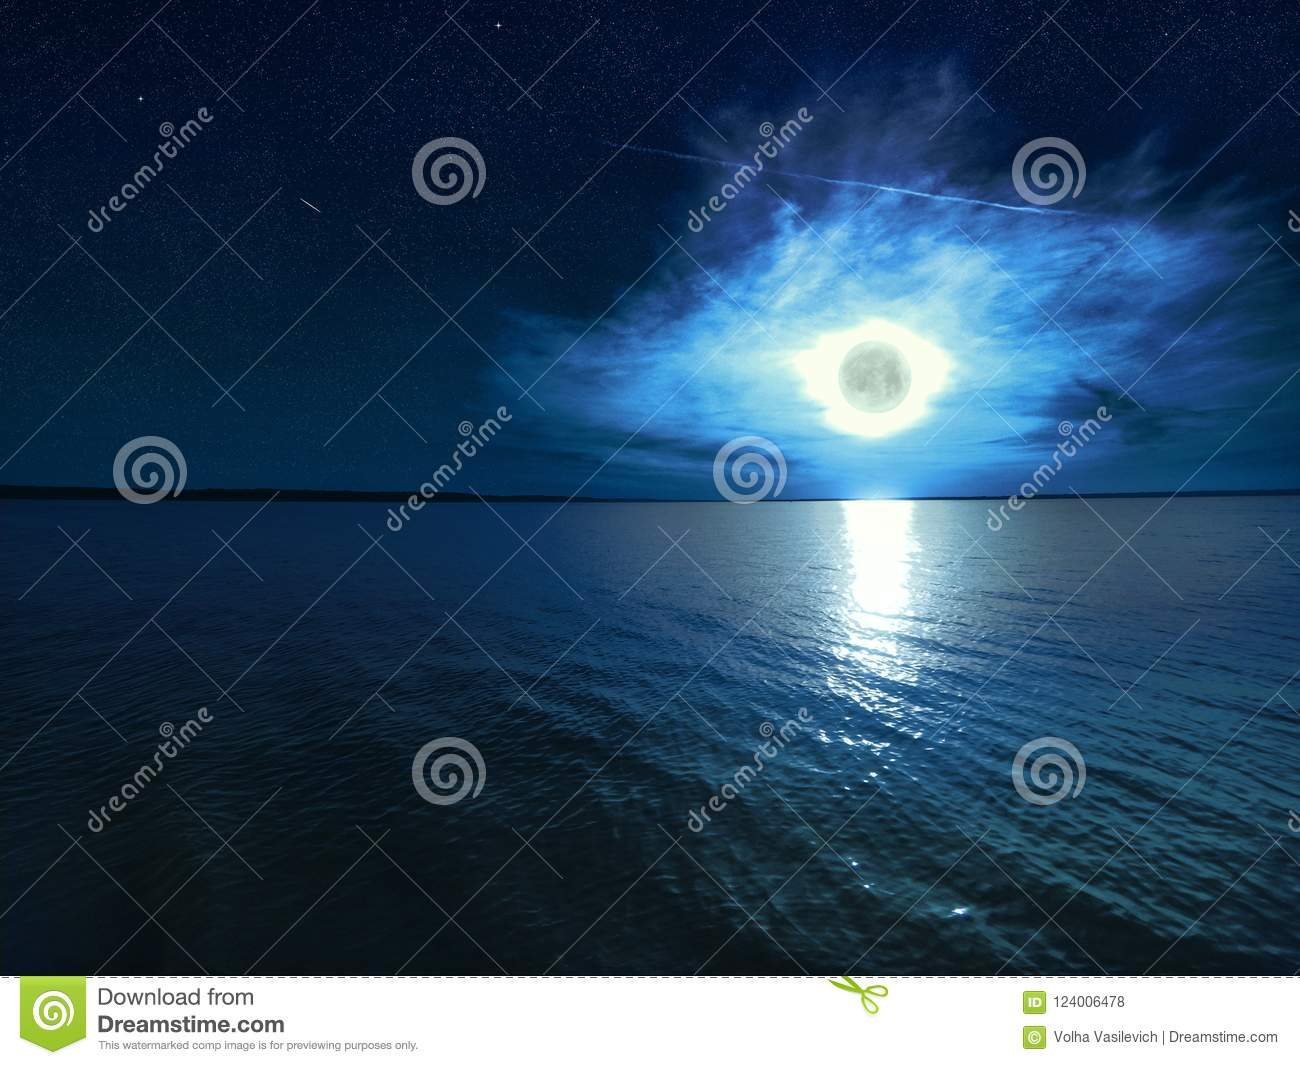 Beautiful magic blue night starry sky with clouds and full moon with reflexion of moonlight in the water